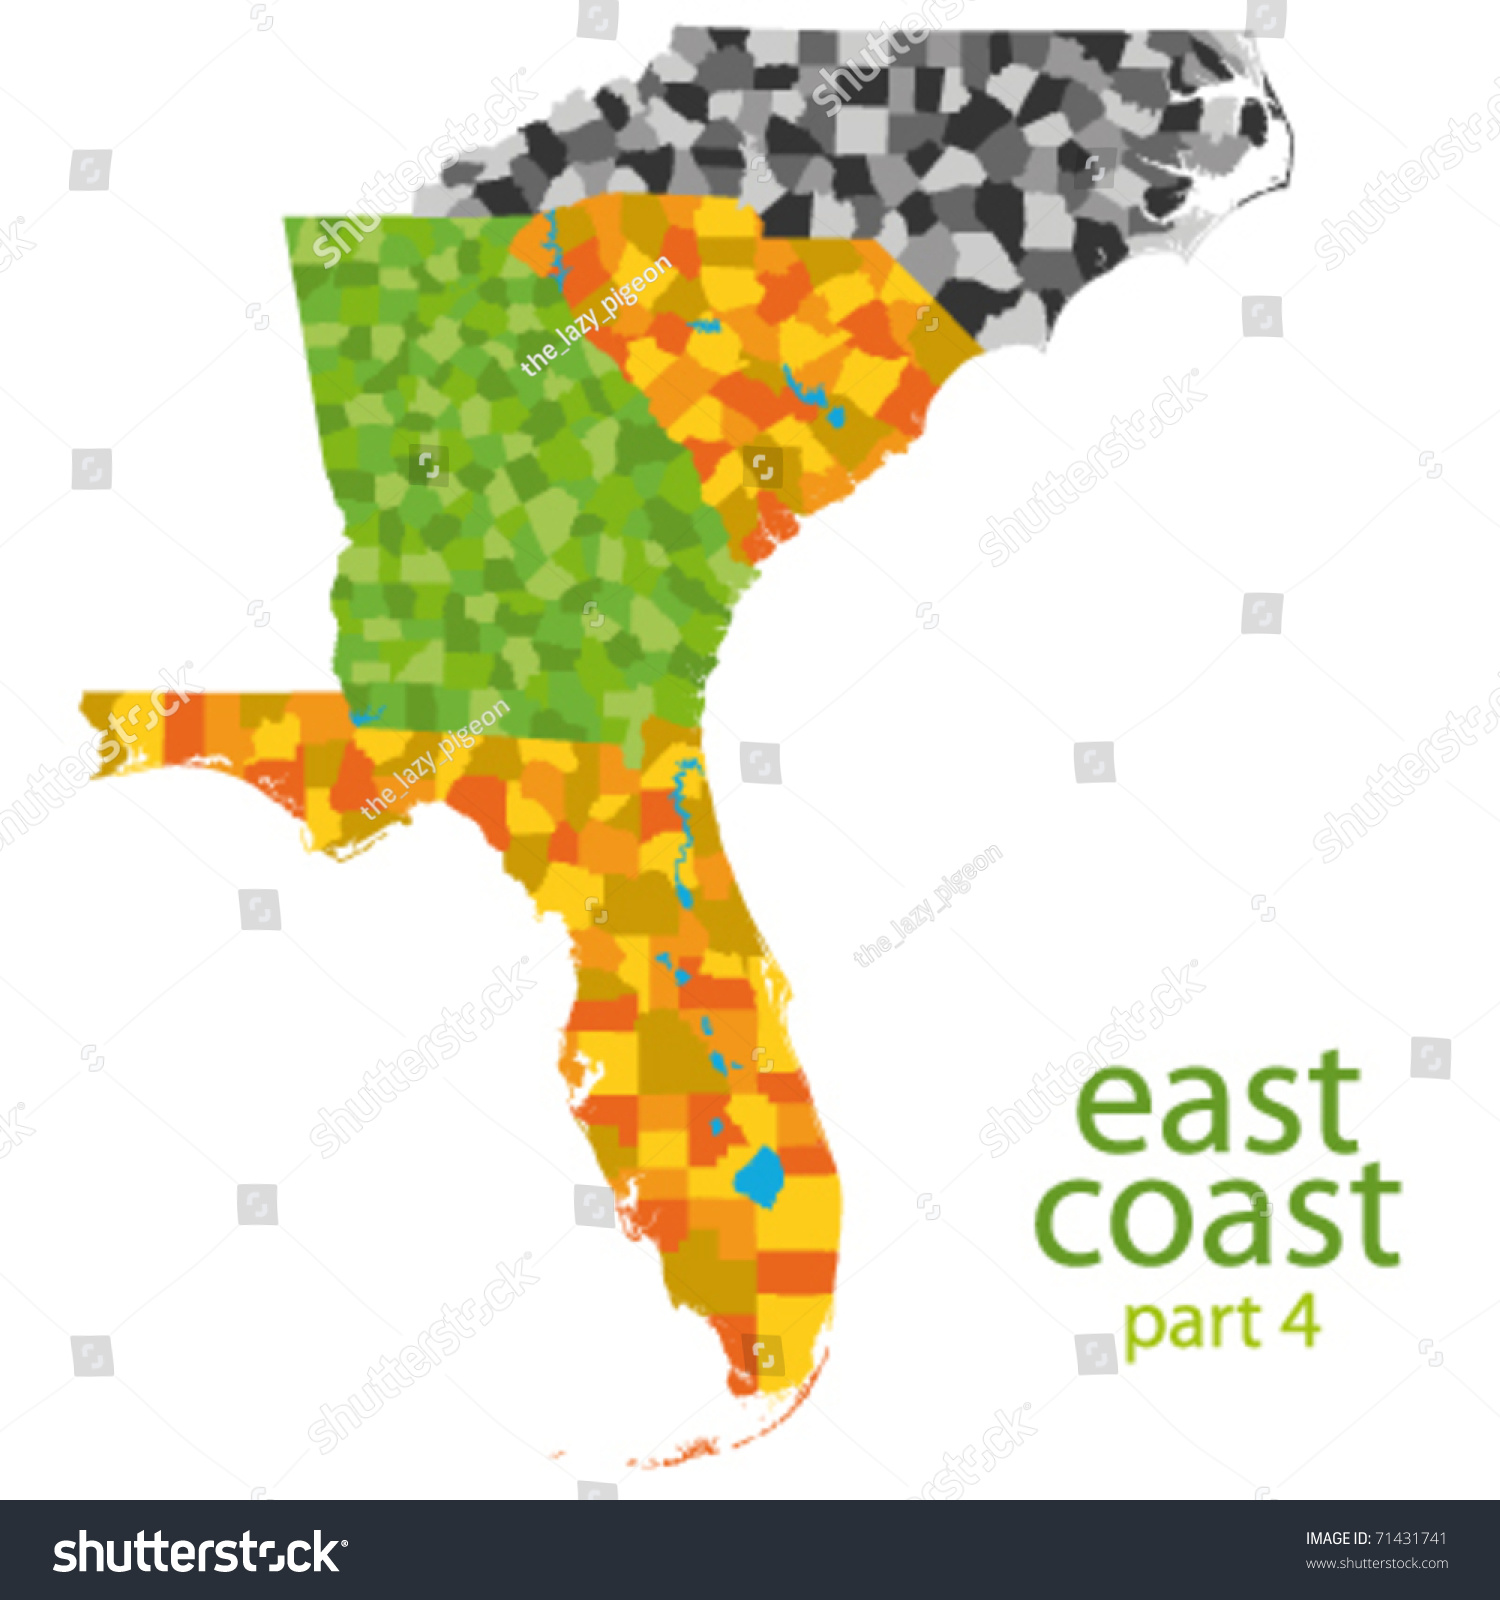 Usa East Coast Vector Map Stock Vector  Shutterstock - Map of east coast on usa